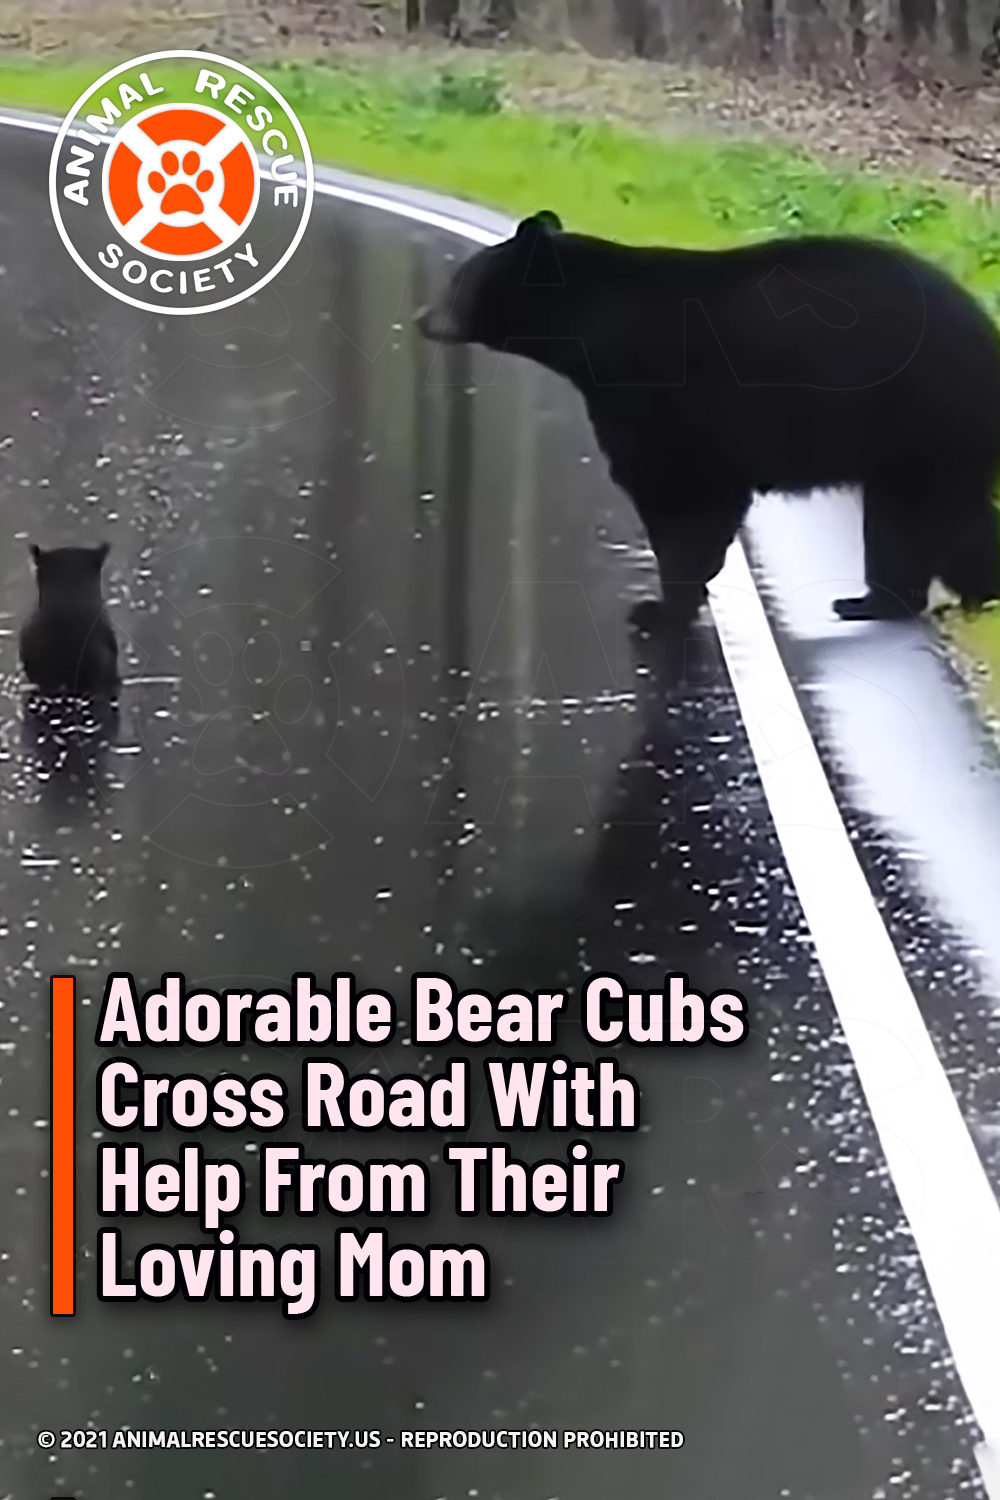 Adorable Bear Cubs Cross Road With Help From Their Loving Mom